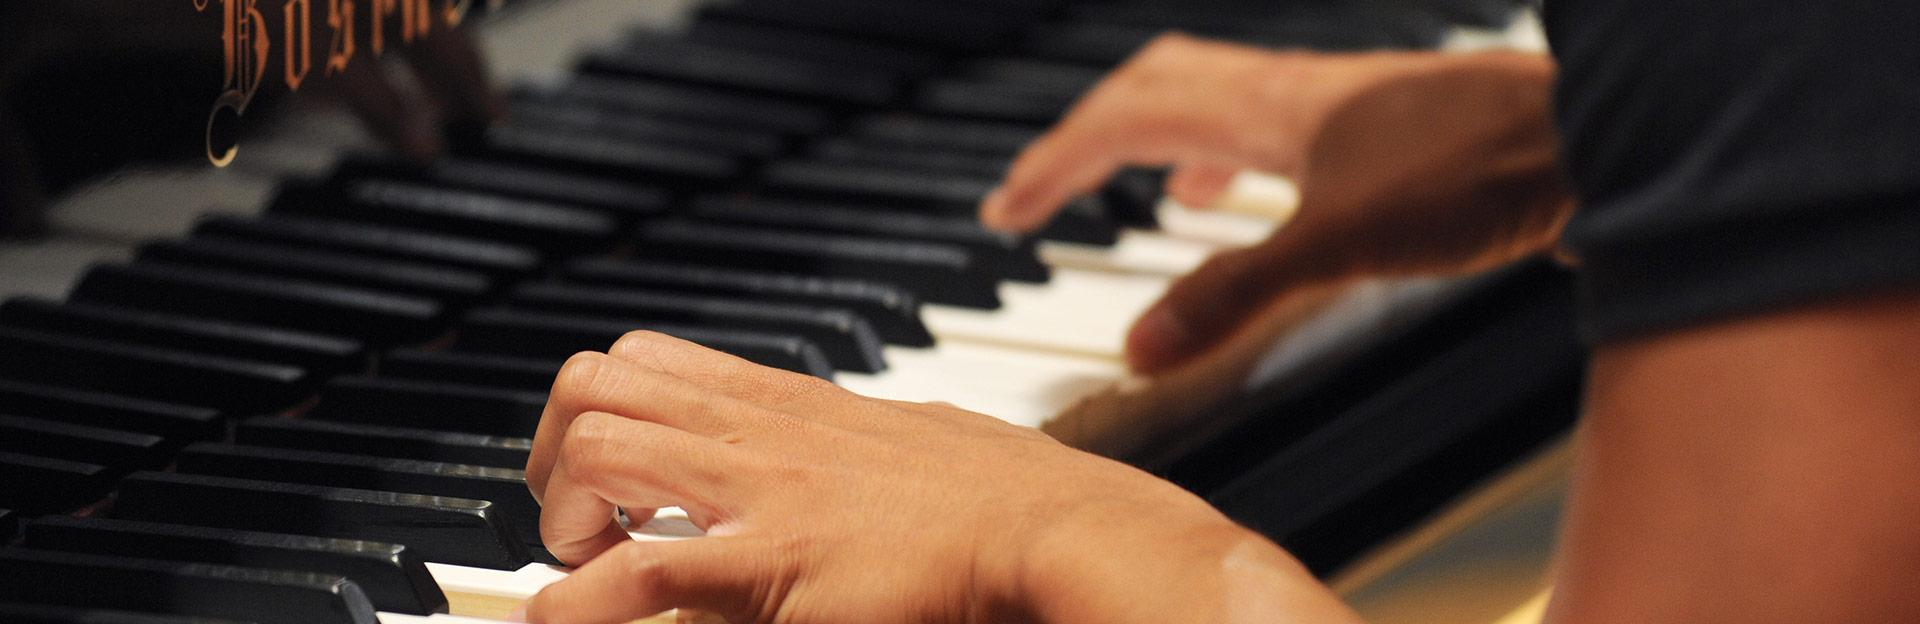 School of music student playing piano